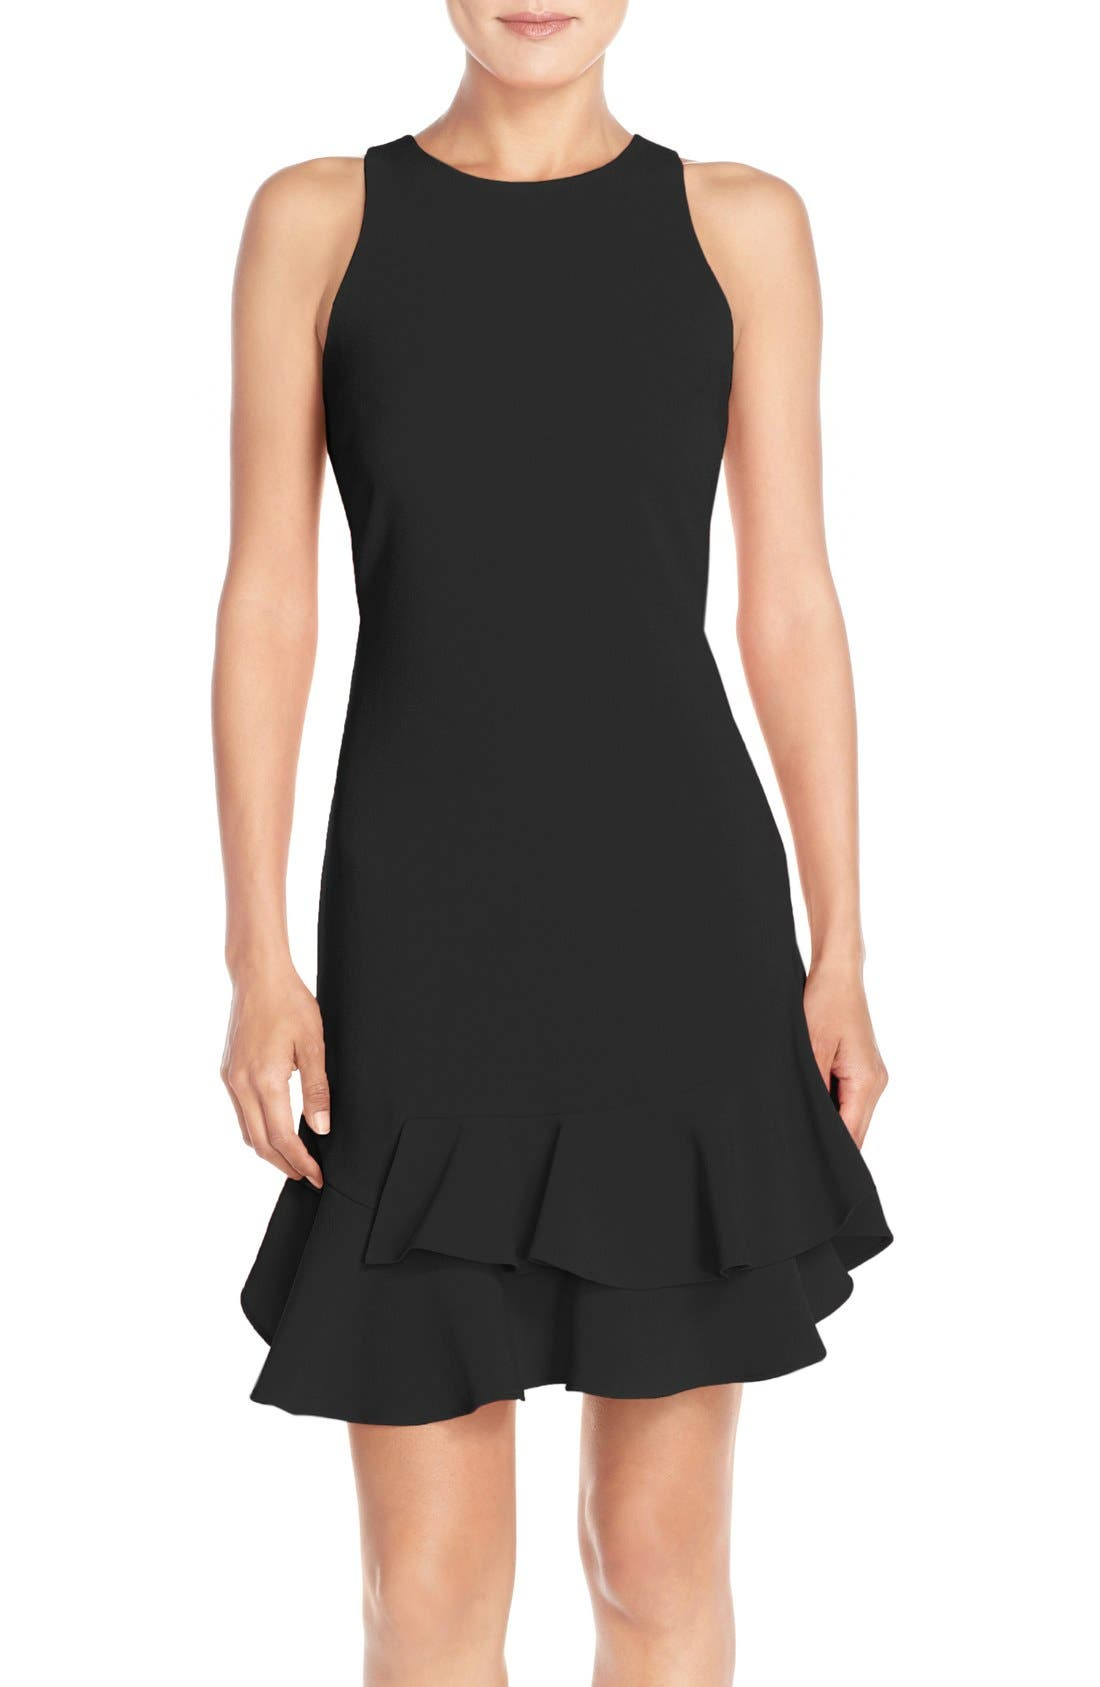 Alternate Image 1 Selected - Chelsea28 Tiered Ruffle Hem Dress